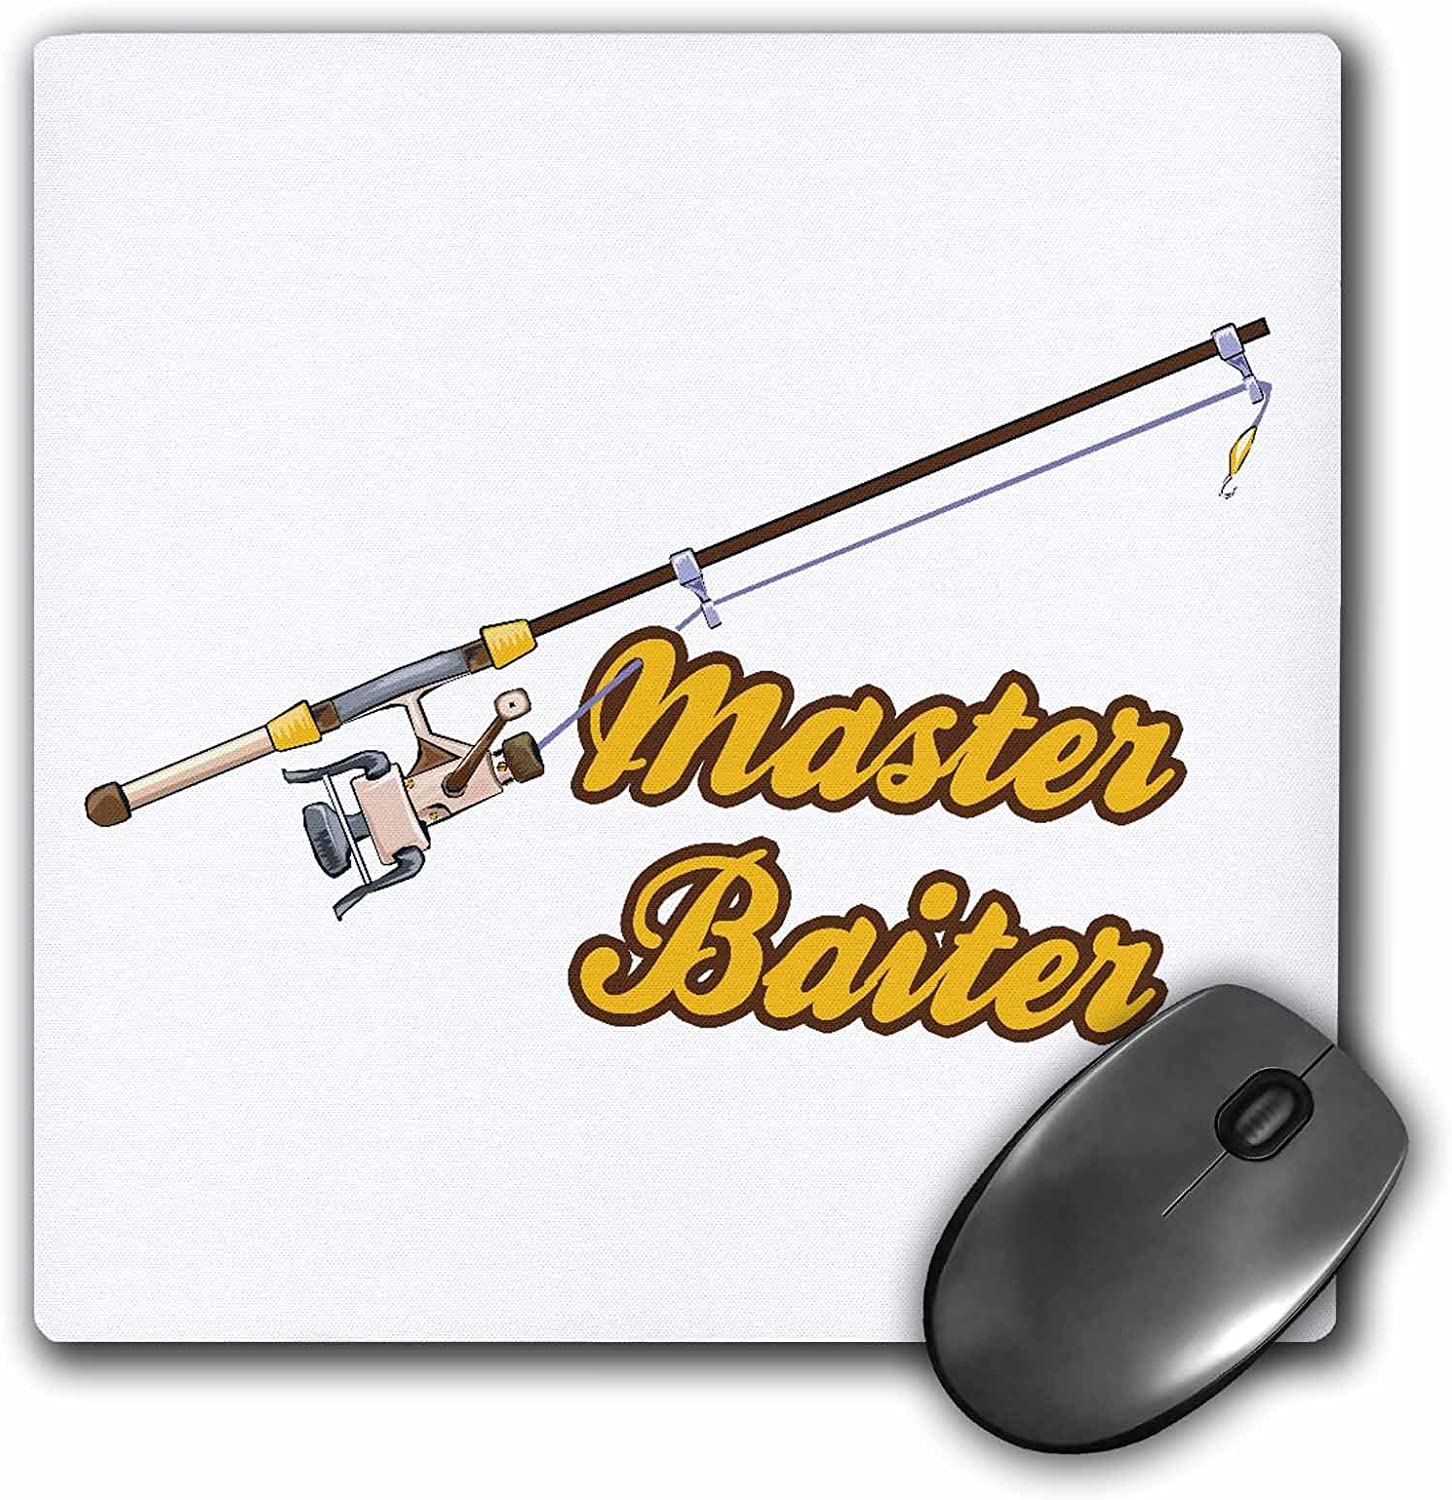 Master Baiter Fishing Pole Funny Fishing Humor Sports Design Mouse Pad 8 By 8 Inches Mp 116326 1 Office Products Amazon Com